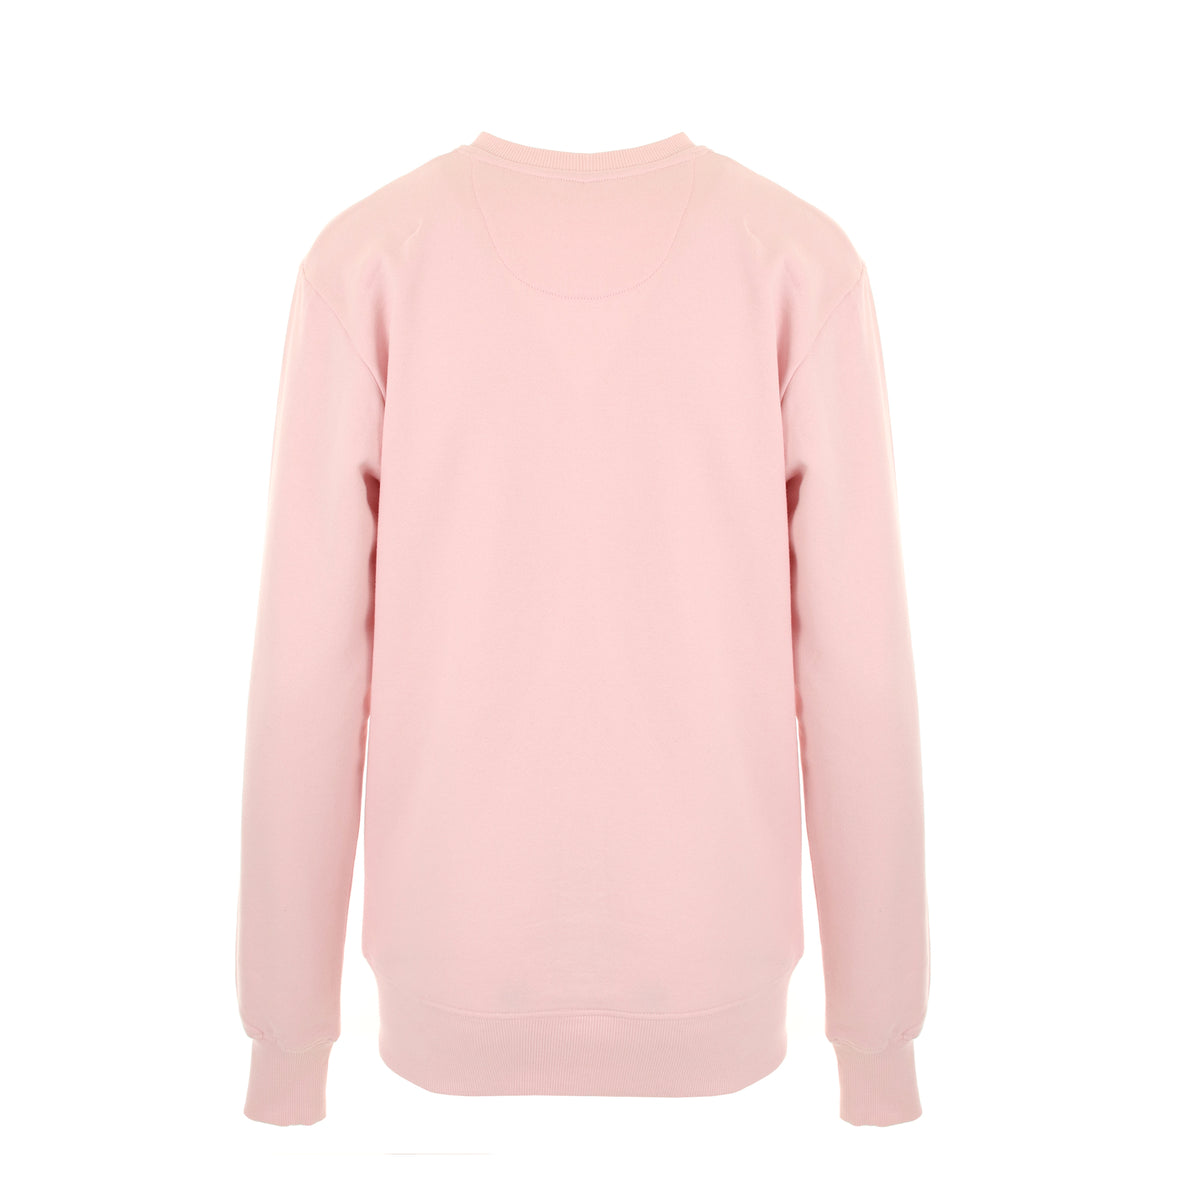 ARCTIC SWEATSHIRT OVERSIZED DRESS- PINK / PEACH LADIES